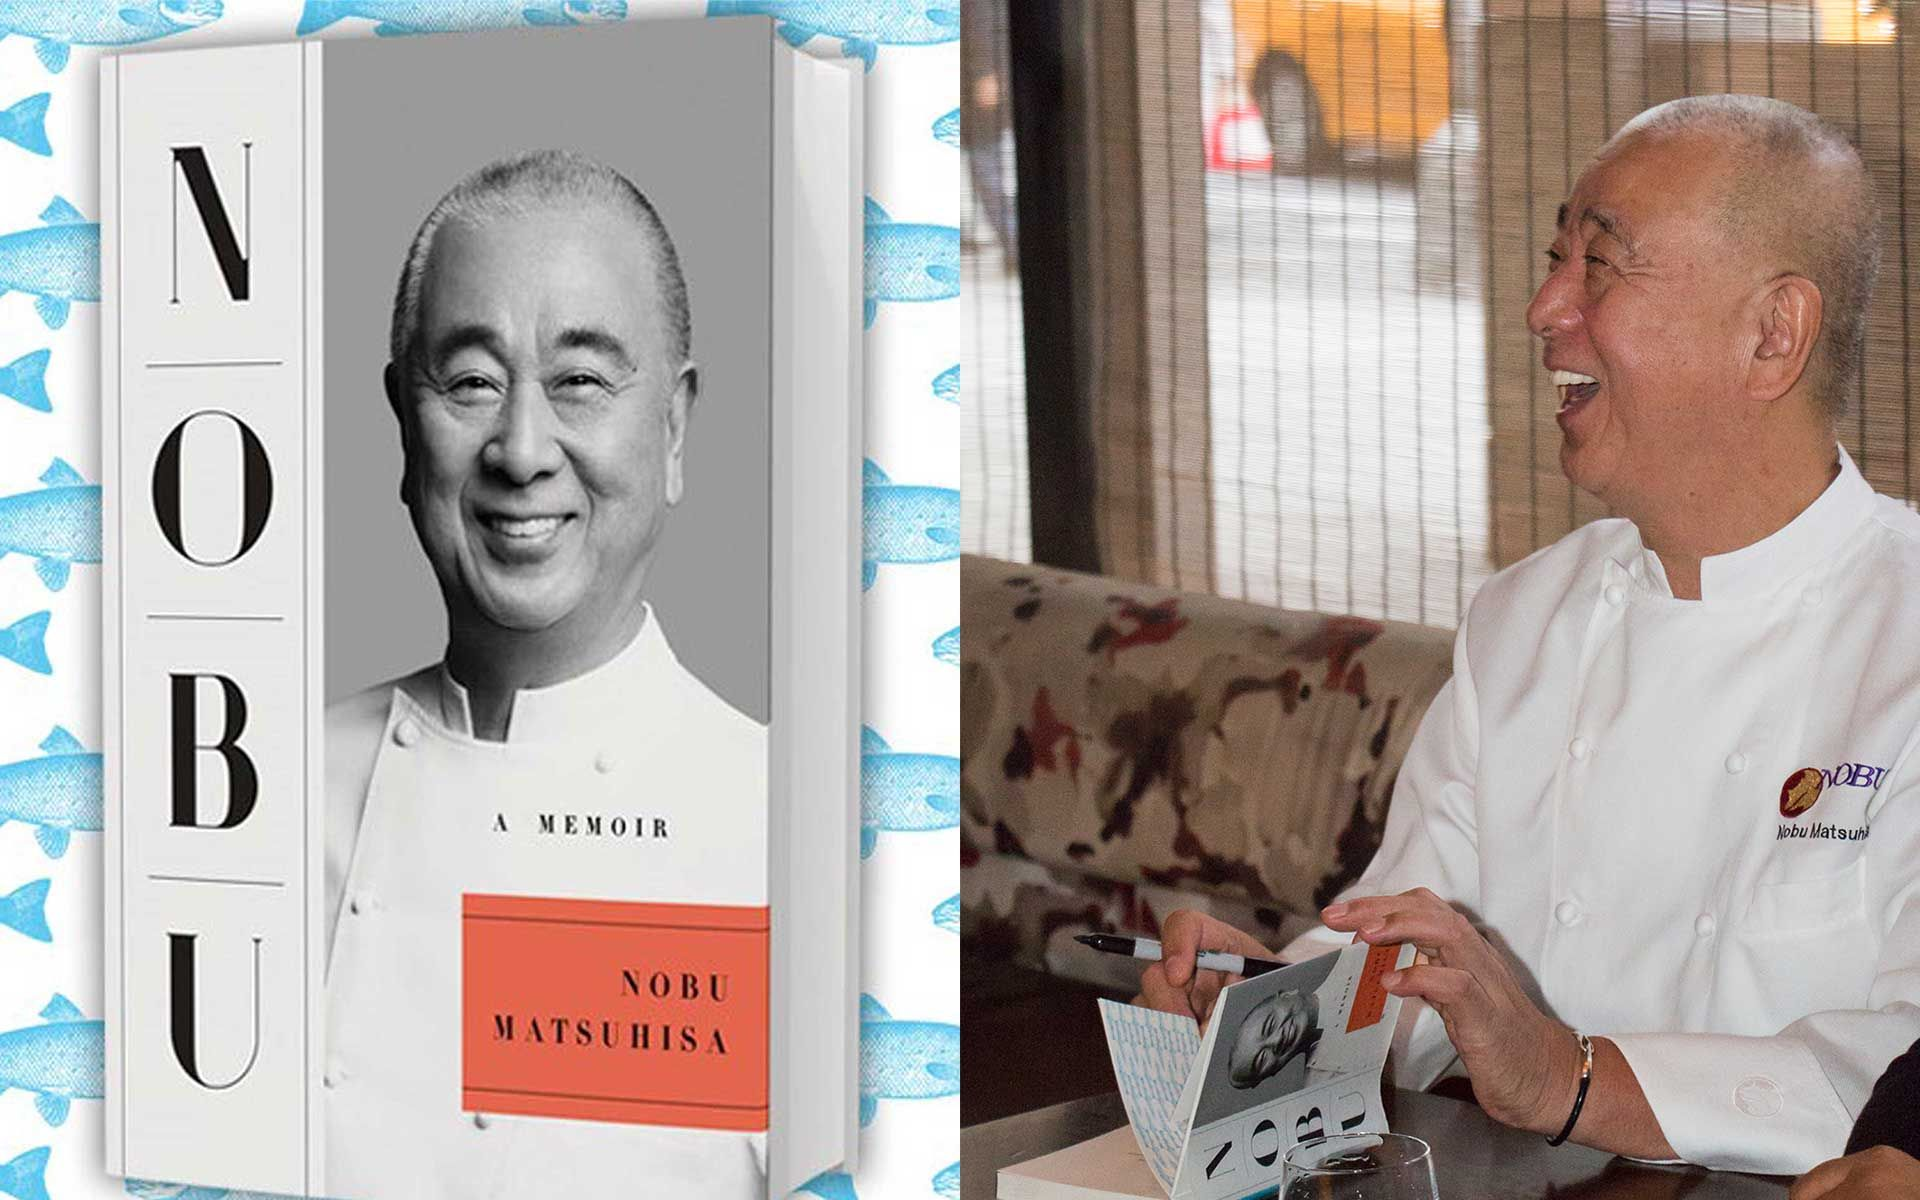 6 Pieces Of Advice From Nobu's Memoir Everyone Should Adopt